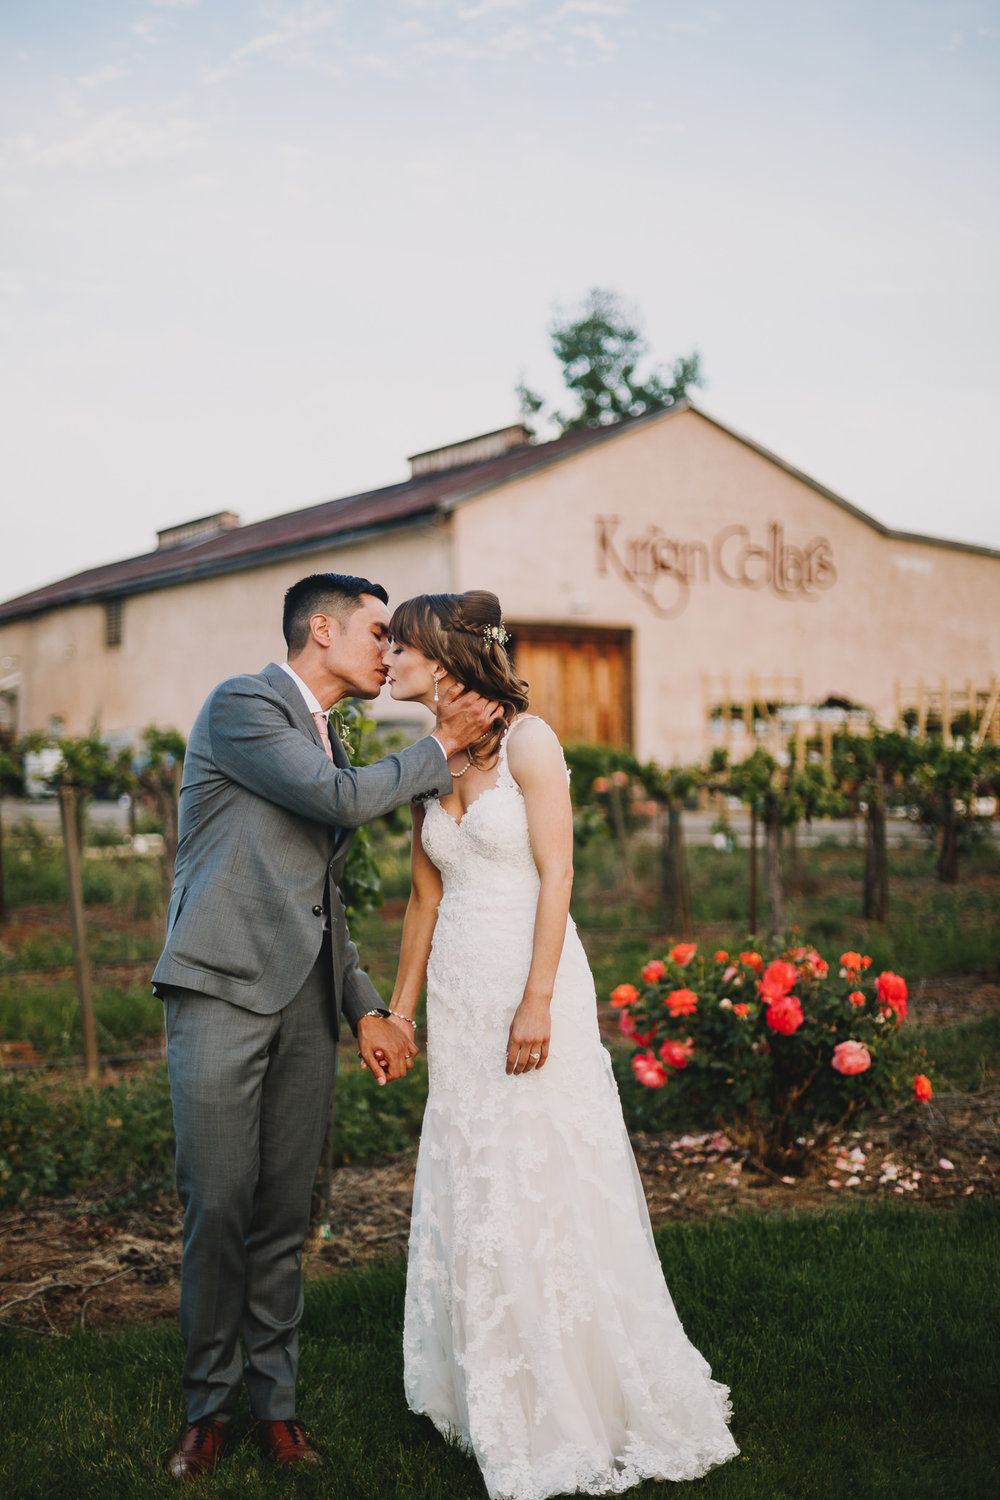 Archer Inspired Photography Kirigin Cellars Gilroy California SoCal Orange County Los Angeles Long Beach Lifestyle Wedding Elopement Engagement Photographer-447.jpg